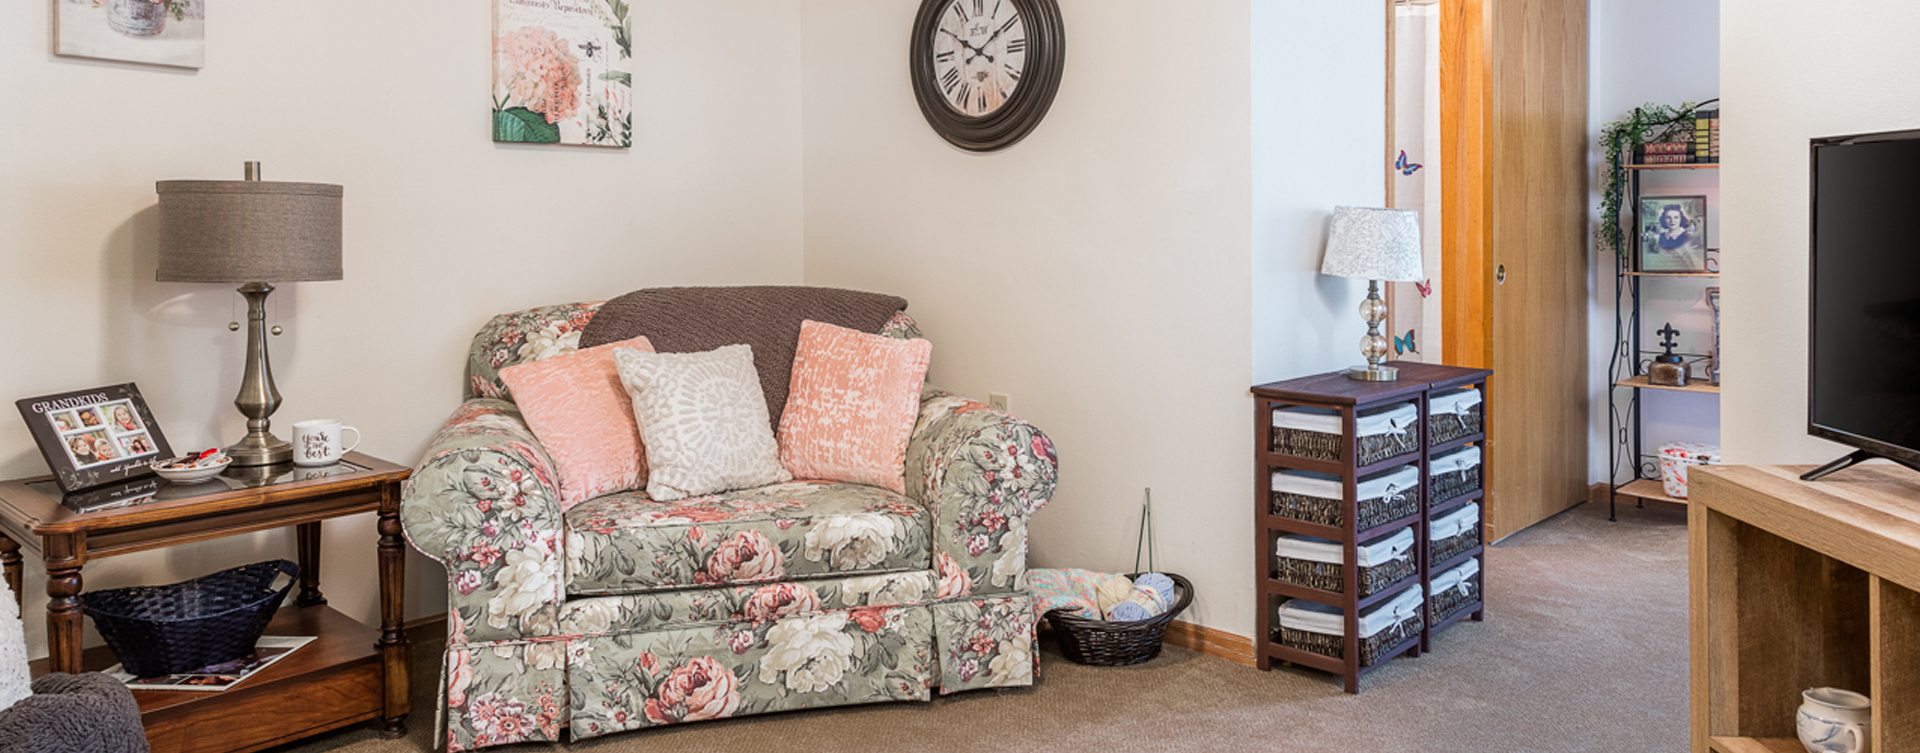 Personalize and decorate to your unique tastes an apartment at Bickford of Fort Dodge